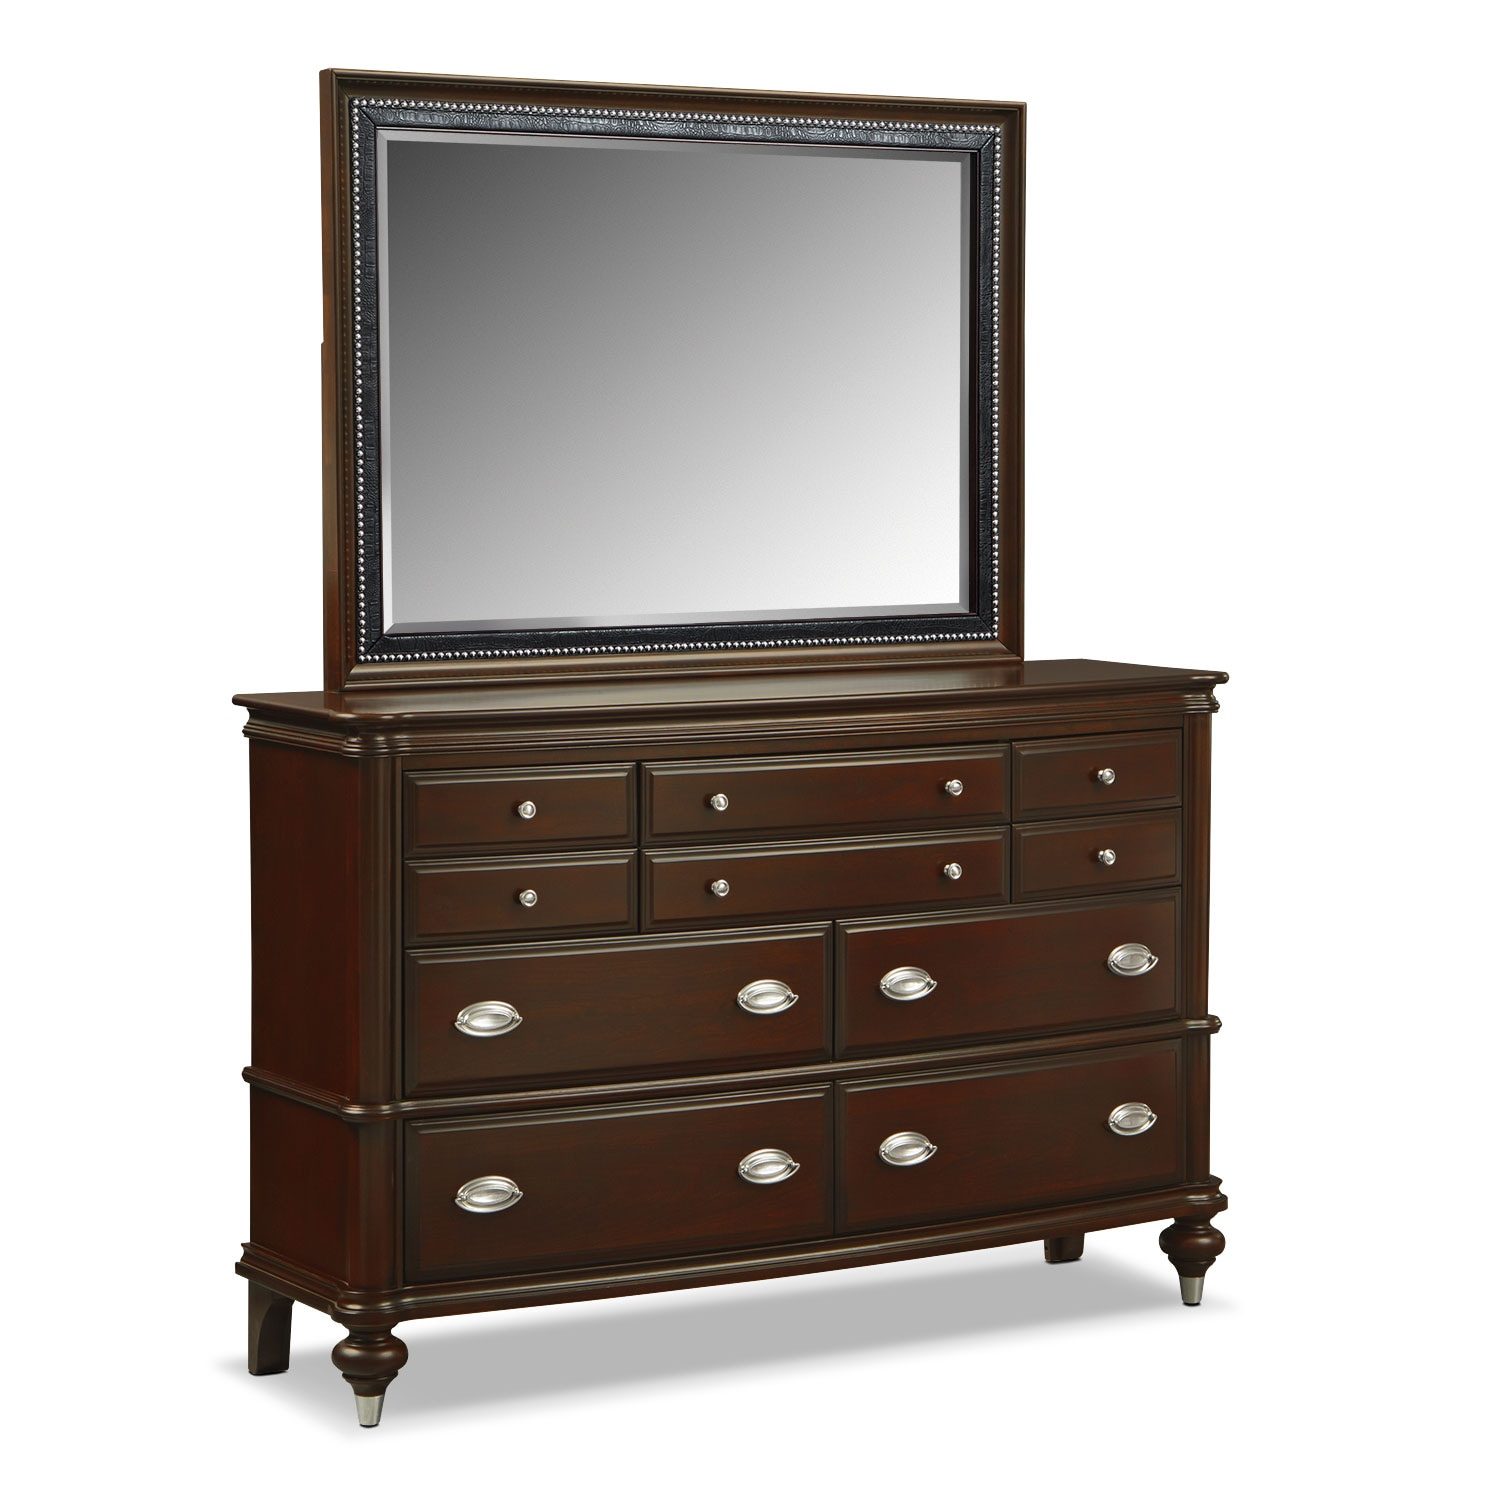 Esquire Dresser and Mirror - Merlot